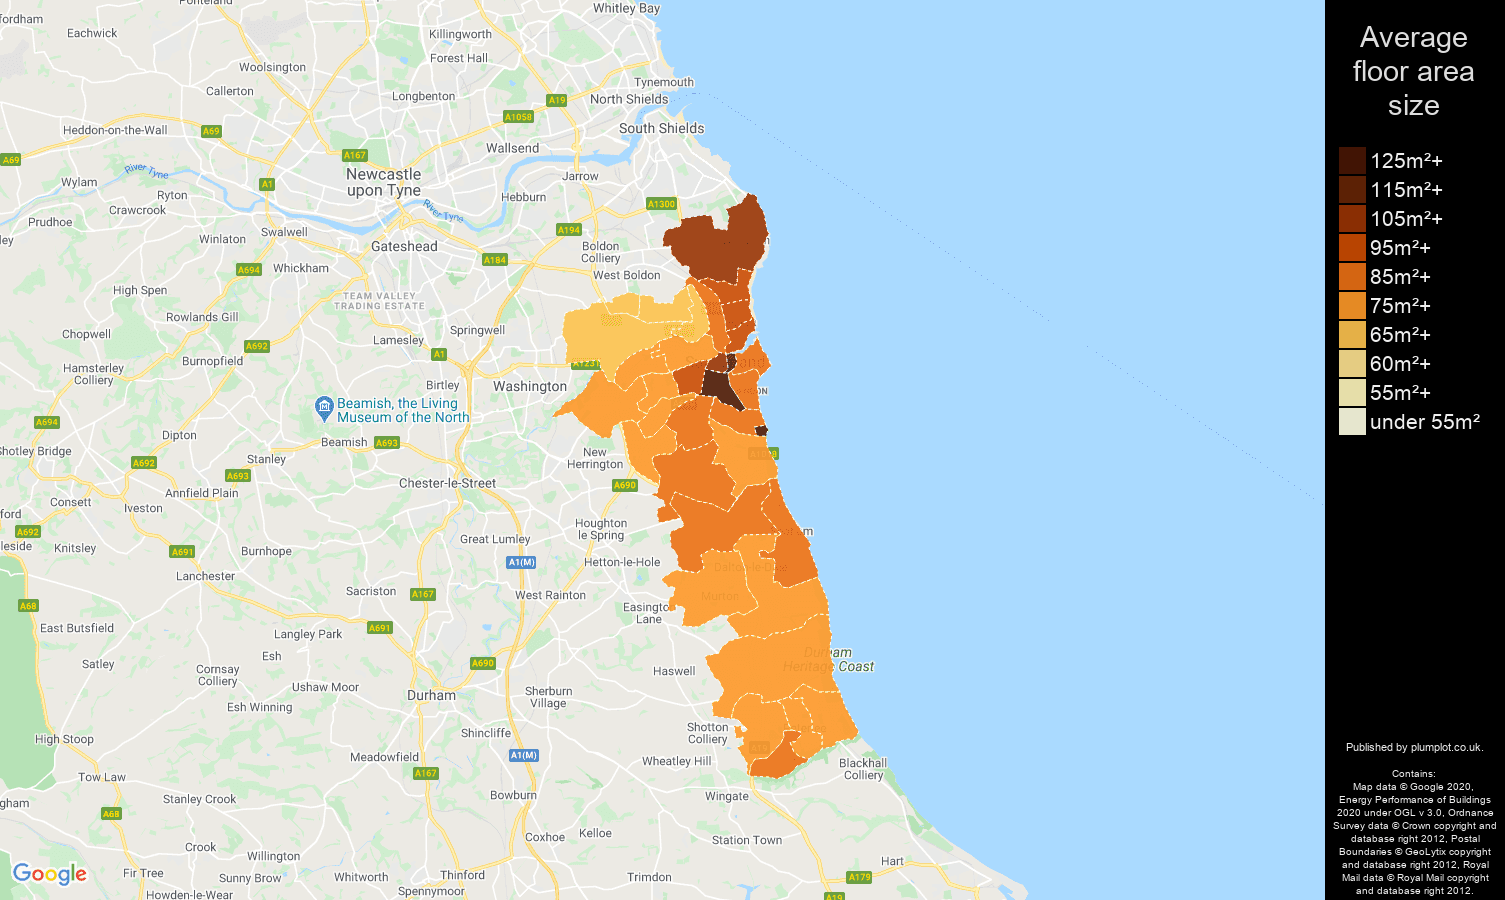 Sunderland map of average floor area size of houses